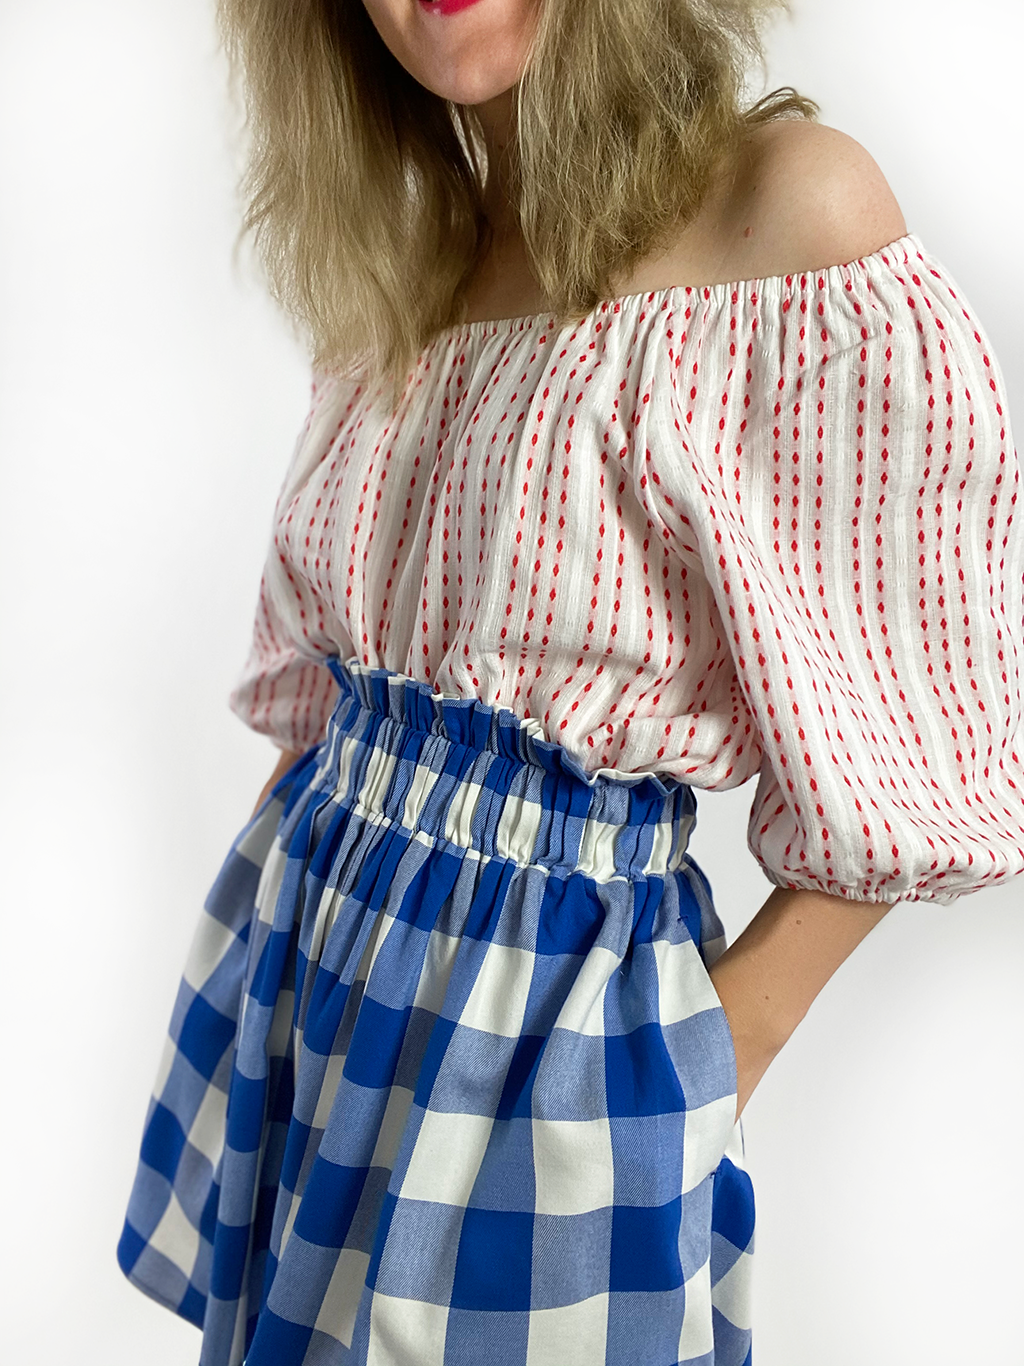 Buffalo Check Split Skirt - In Stock